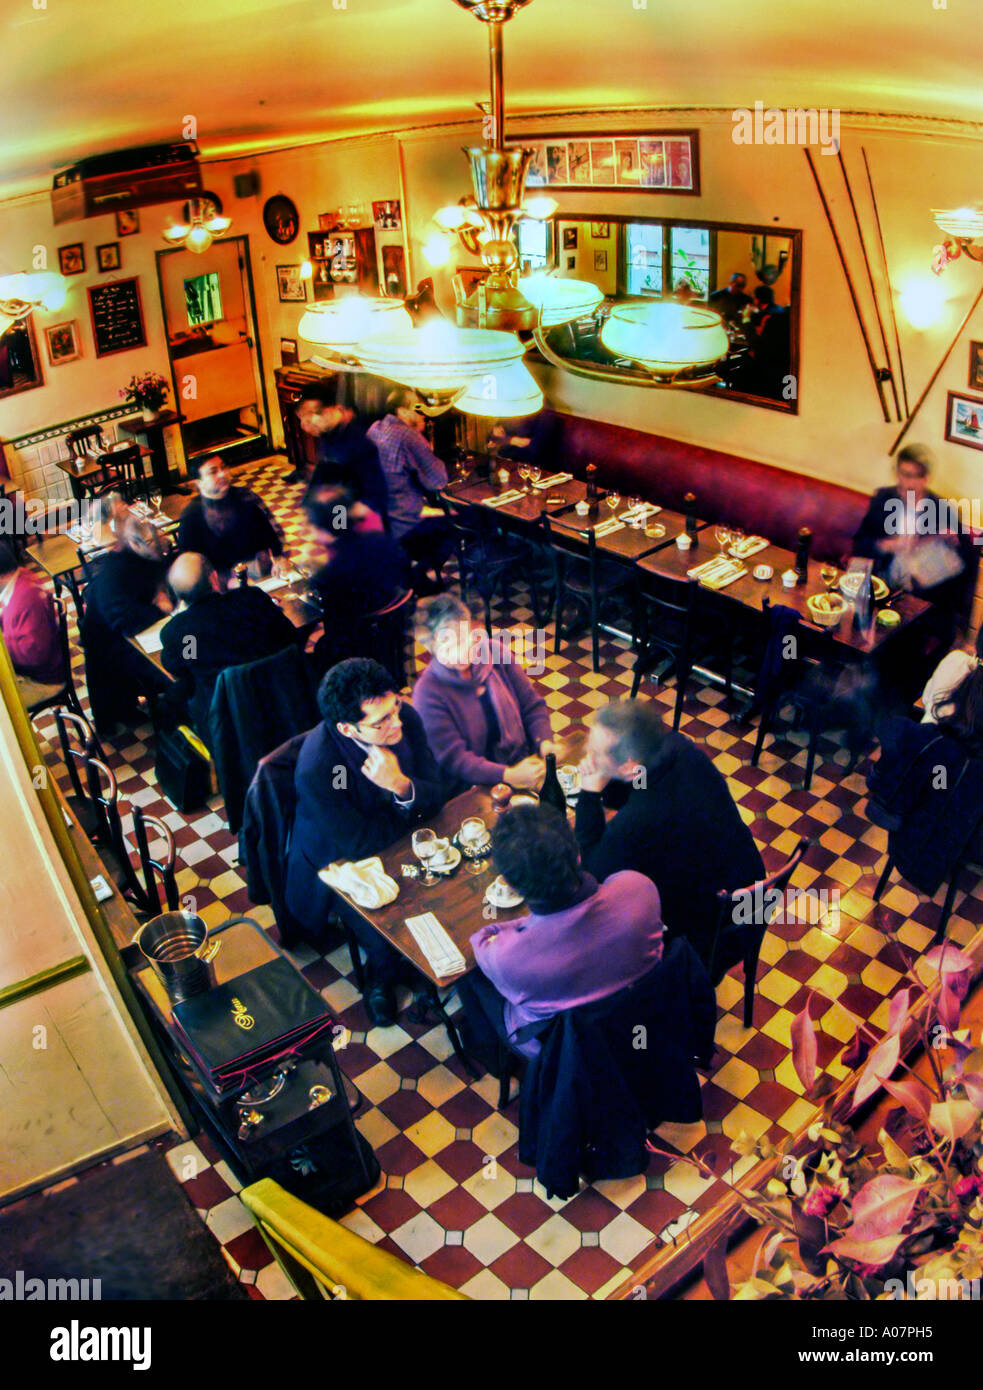 PARIS France People In Overview Traditional French Bistro Stock